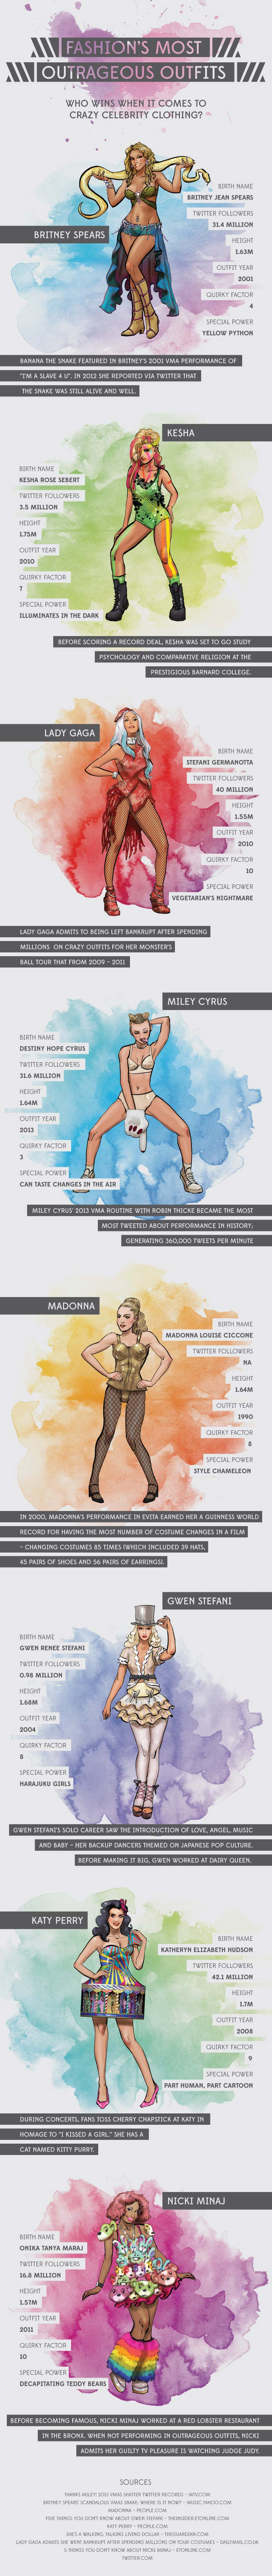 Weird Celebrity Clothes-Infographic